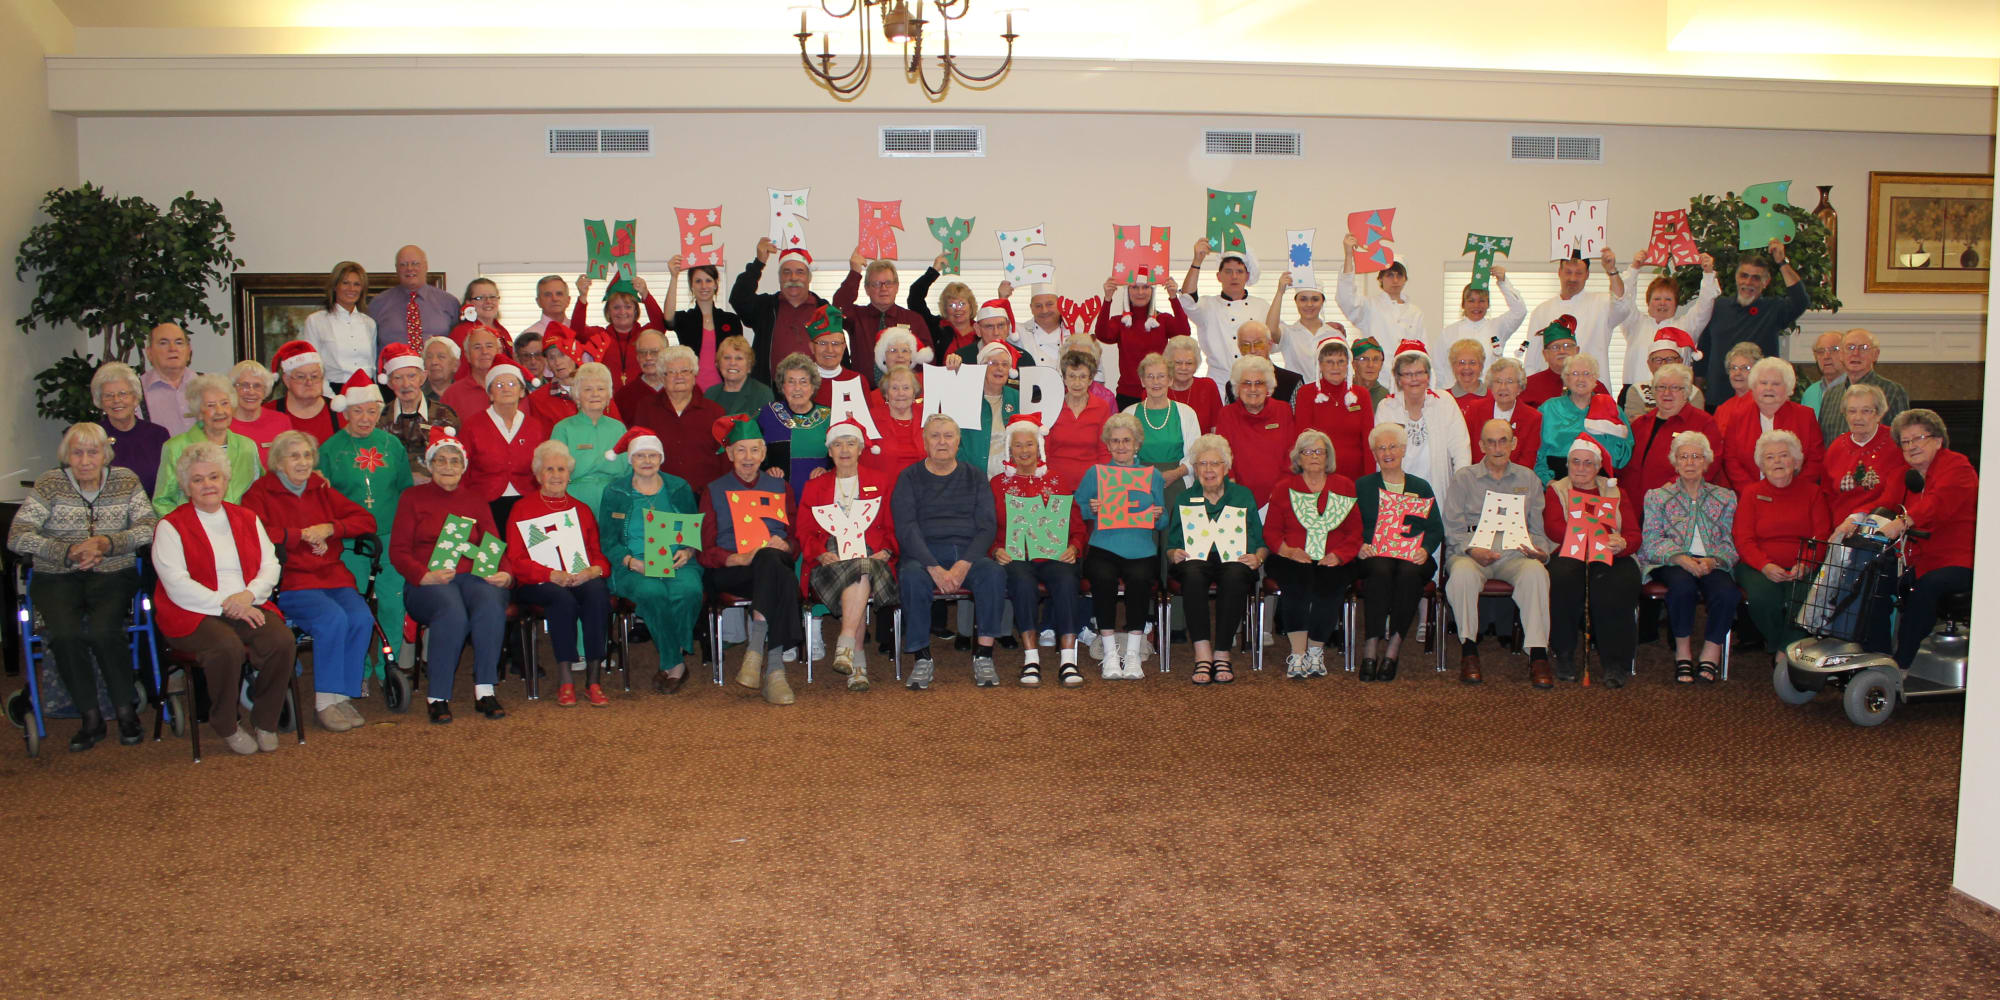 A group photo of residents at Rosewood Estates in Cobourg, Ontario